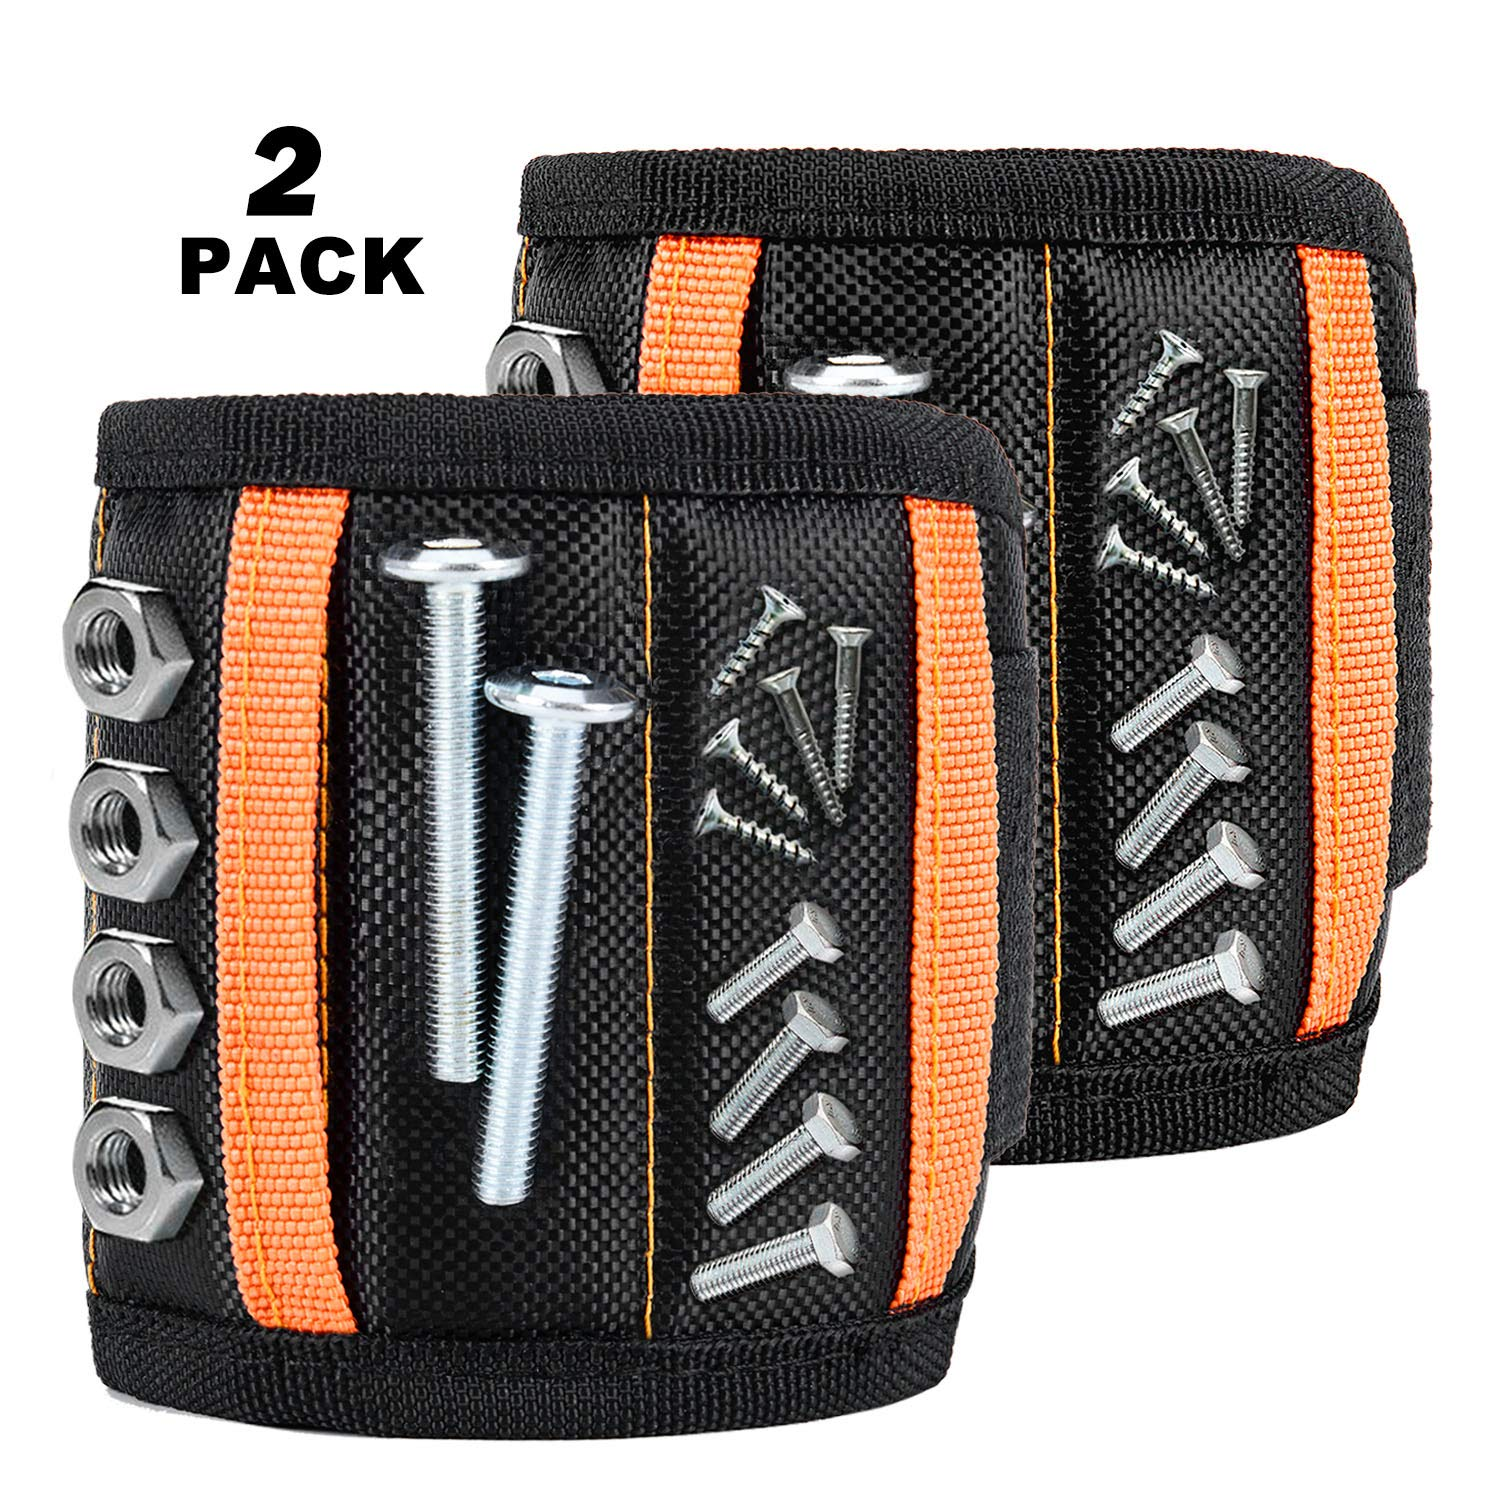 Guckmall 2 pack Magnetic Wristband with 15 Super Powerful Magnets Holds Small Metal Tools, Screws, Nails, Bolts Tightly While Working, Best Black Armband Tool for DIY Handyman